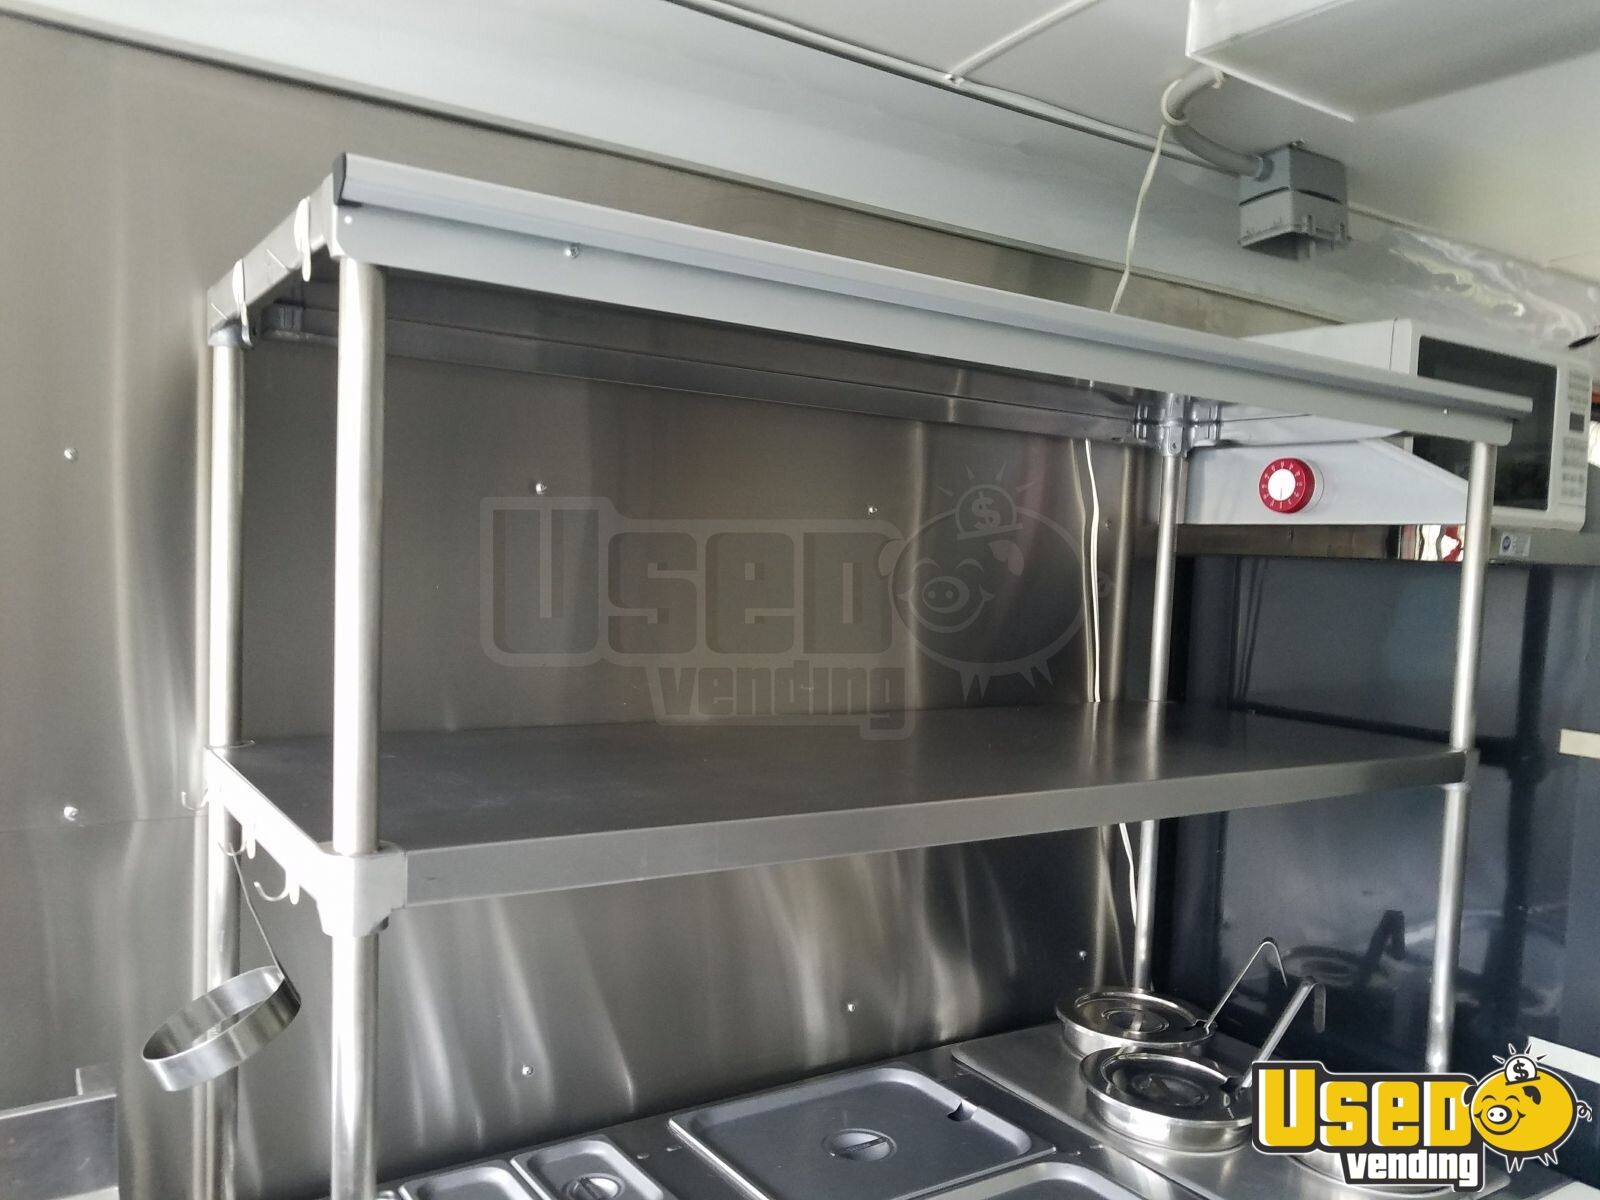 2014 Haulmark All-purpose Food Trailer Tv Connecticut for Sale - 25